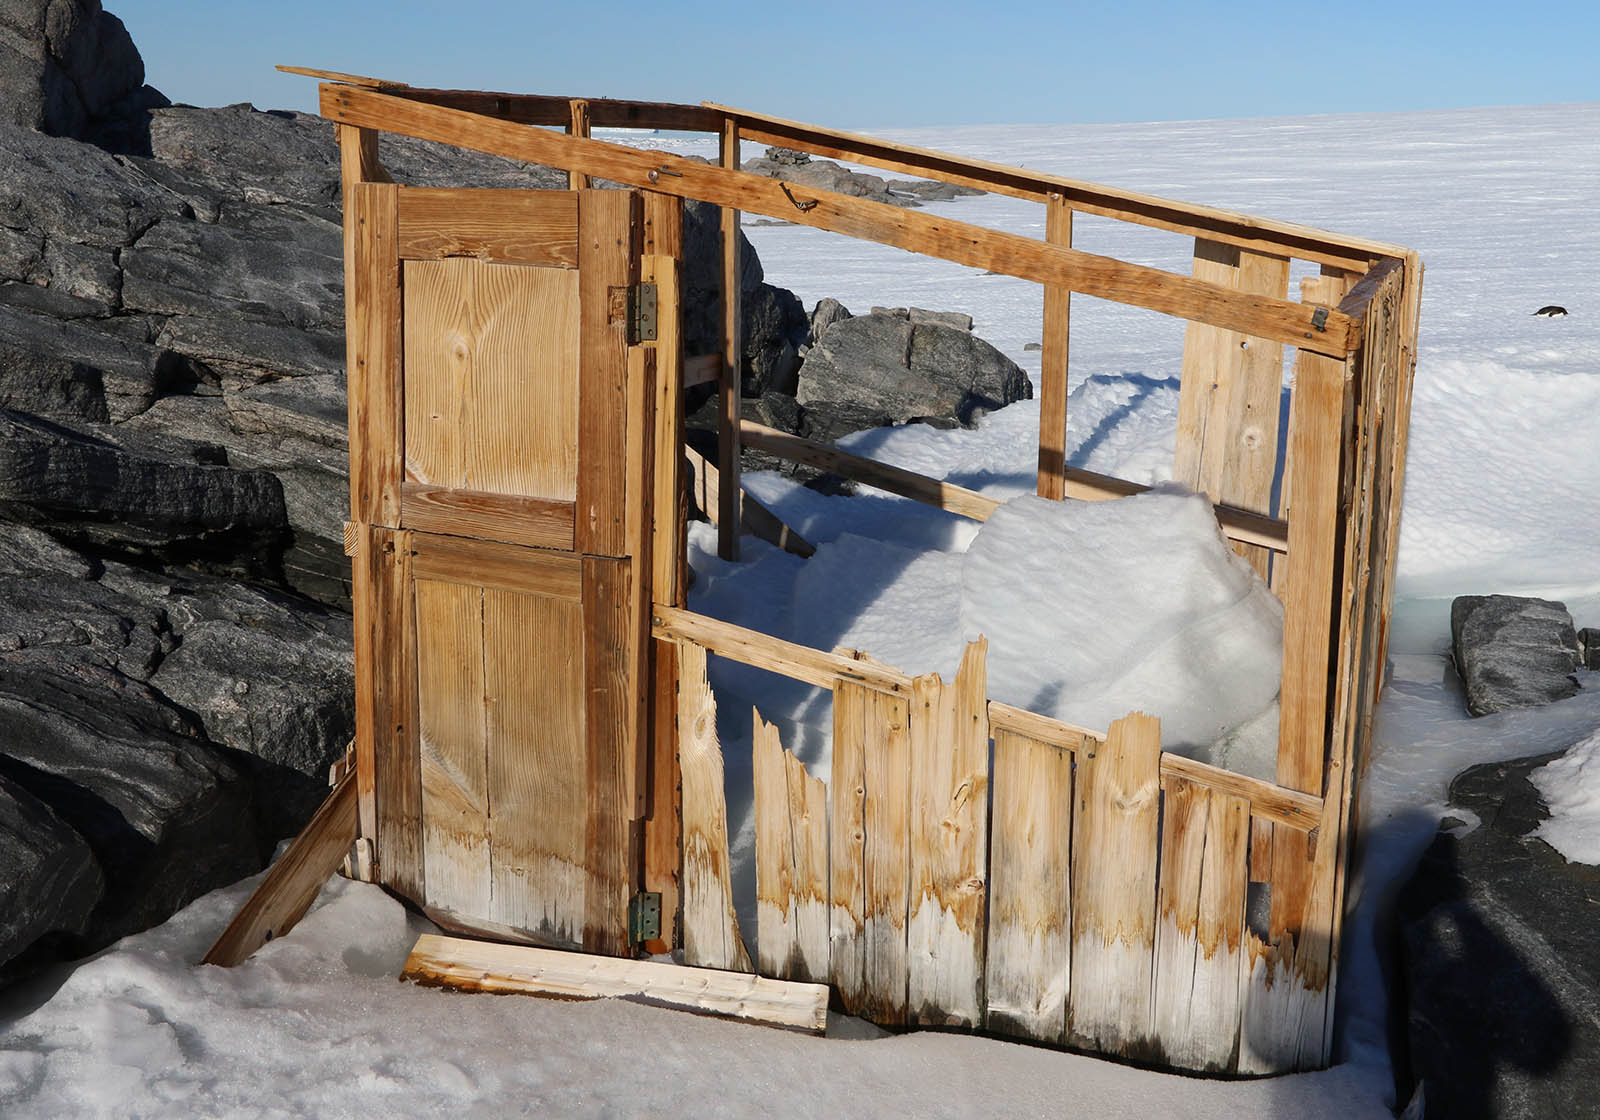 Mawson, Mawson's Huts, Mawson's Huts Foundation, Cape Denison, East Antarctica, Antarctica, Australasian Antarctic Expedition, AAE, Australia's Antarctic Heritage, Antarctic History, Heroic Era of Antarctica, Conservation and Restoration,